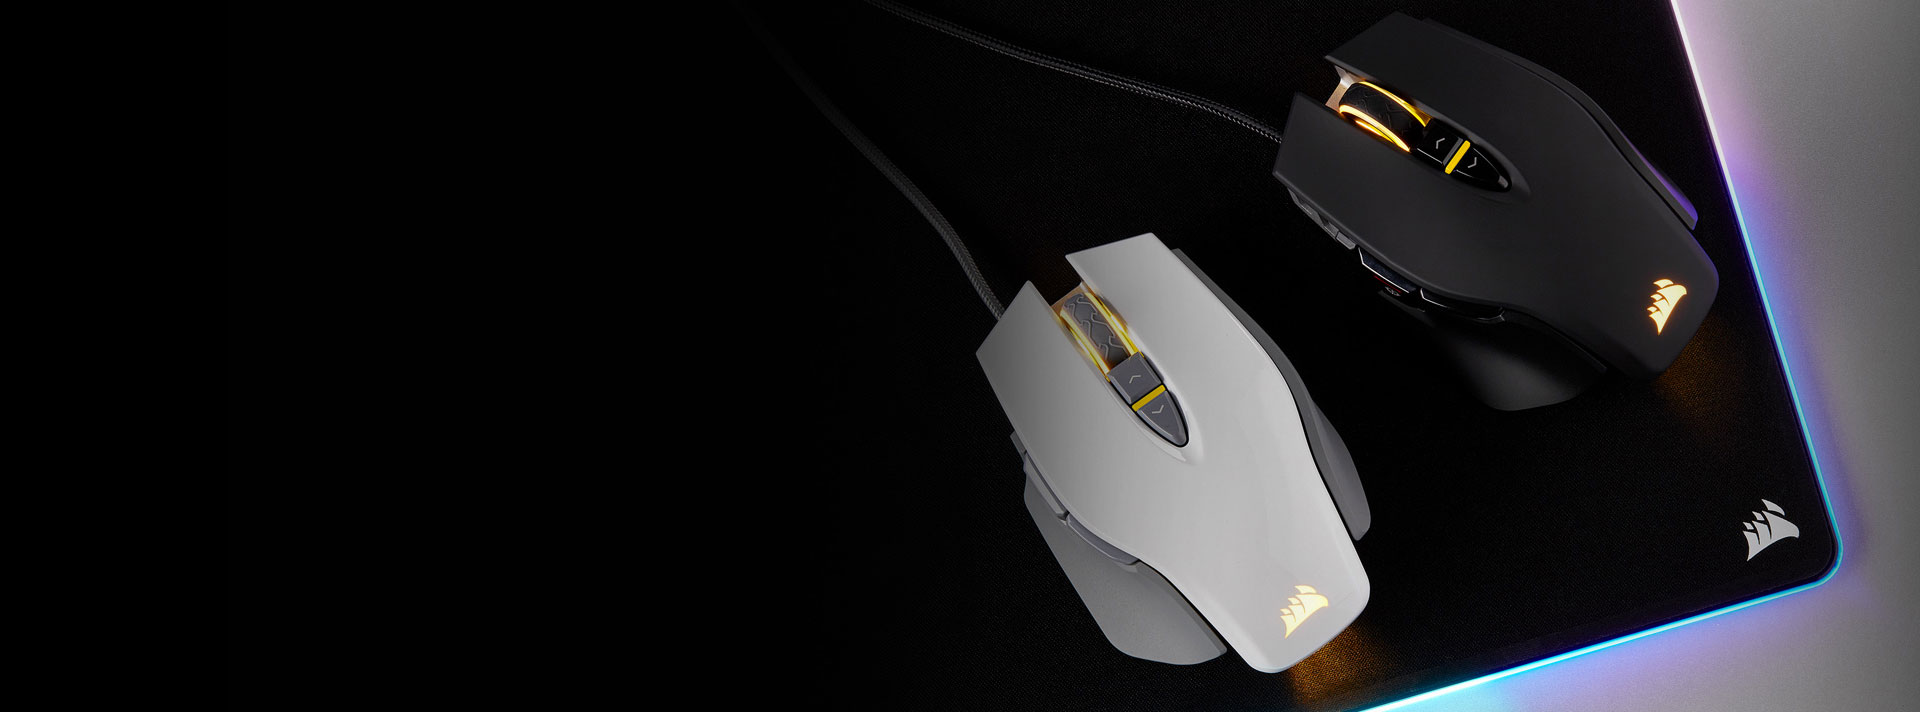 CORSAIR M65 RGB ELITE GAMING MOUSE